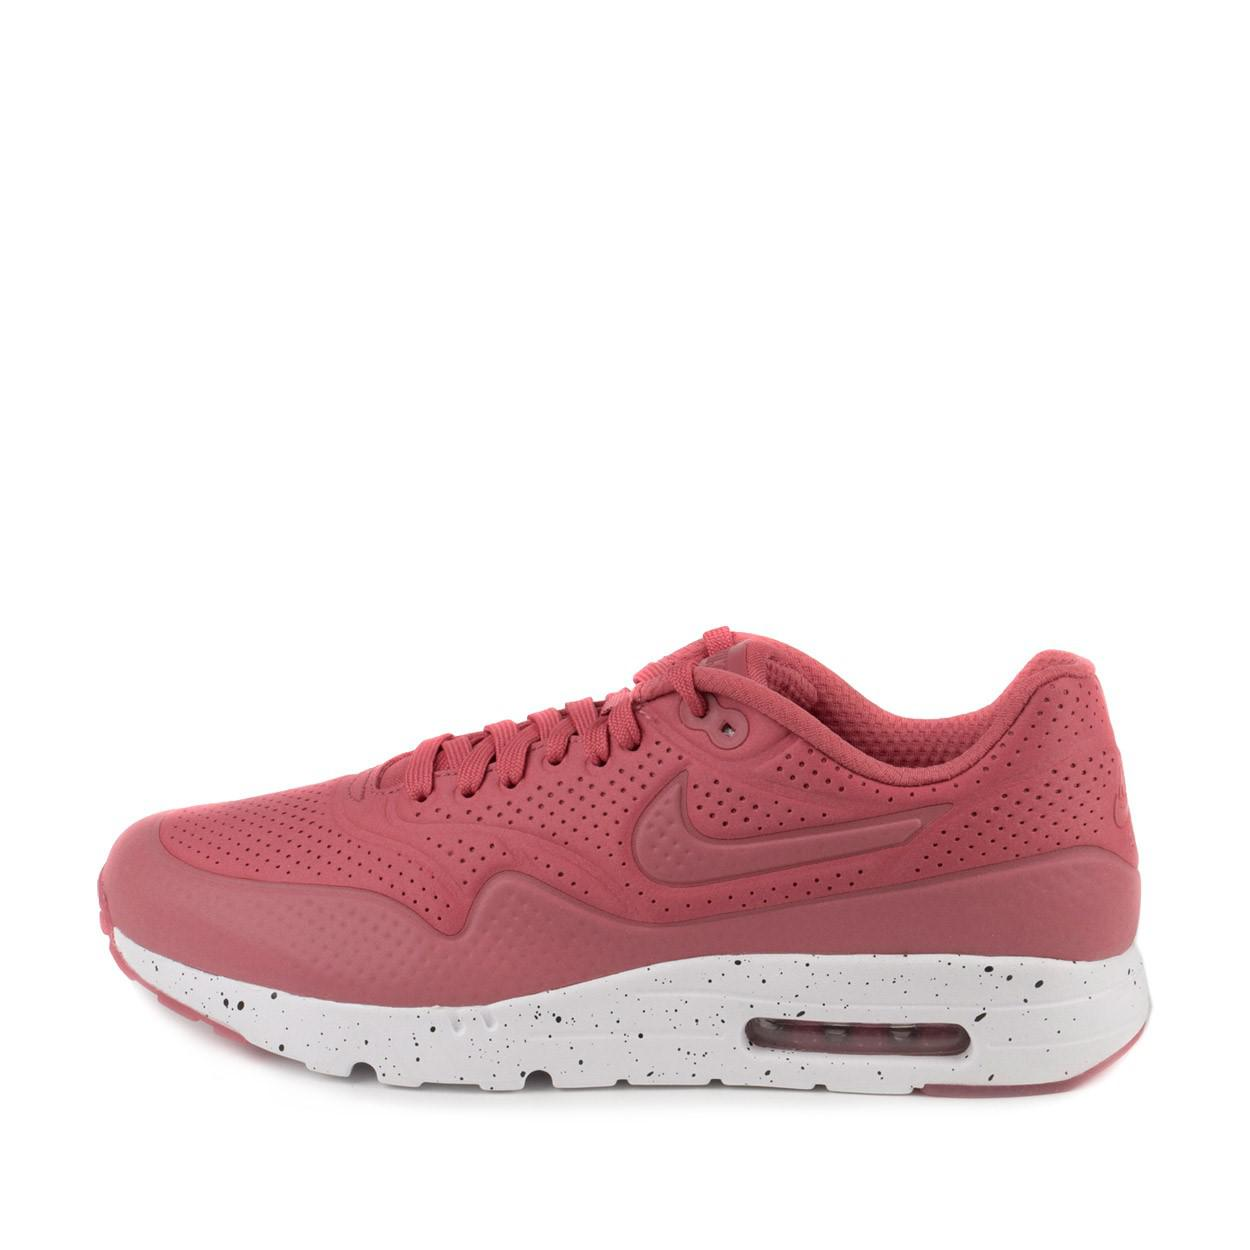 ee6c315127 Lyst - Nike Mens Air Max 1 Ultra Moire Terra Red/white 705297-611 ...